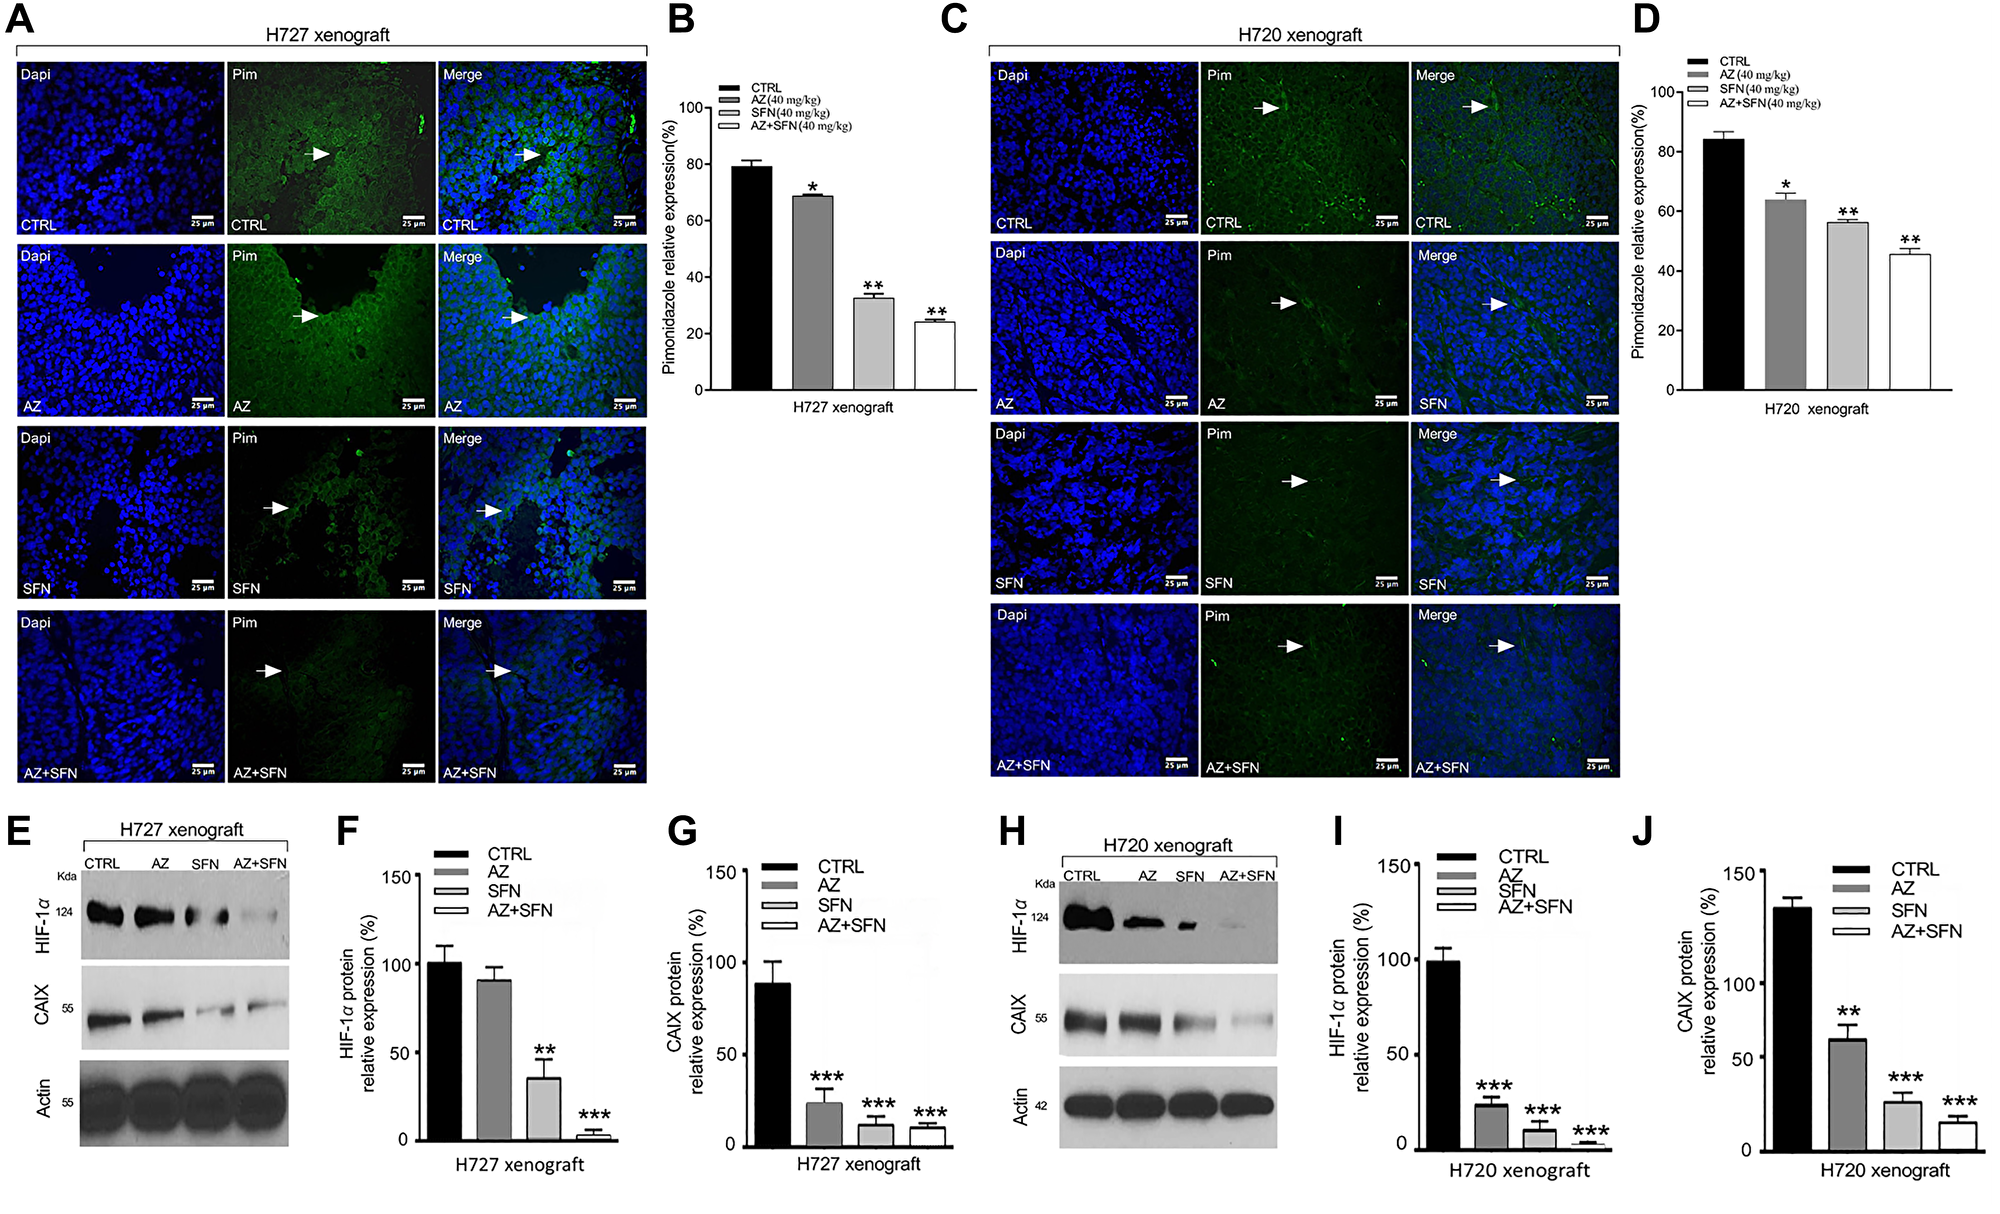 AZ, SFN, and AZ+SFN upend hypoxia microenvironment in H720 and H727 xenografts using Hypoxyprobe™ (pimonidazole hydrochloride) immunohistochemical analysis and western blot of HIF-1α and CAIX in xenograft lysates.